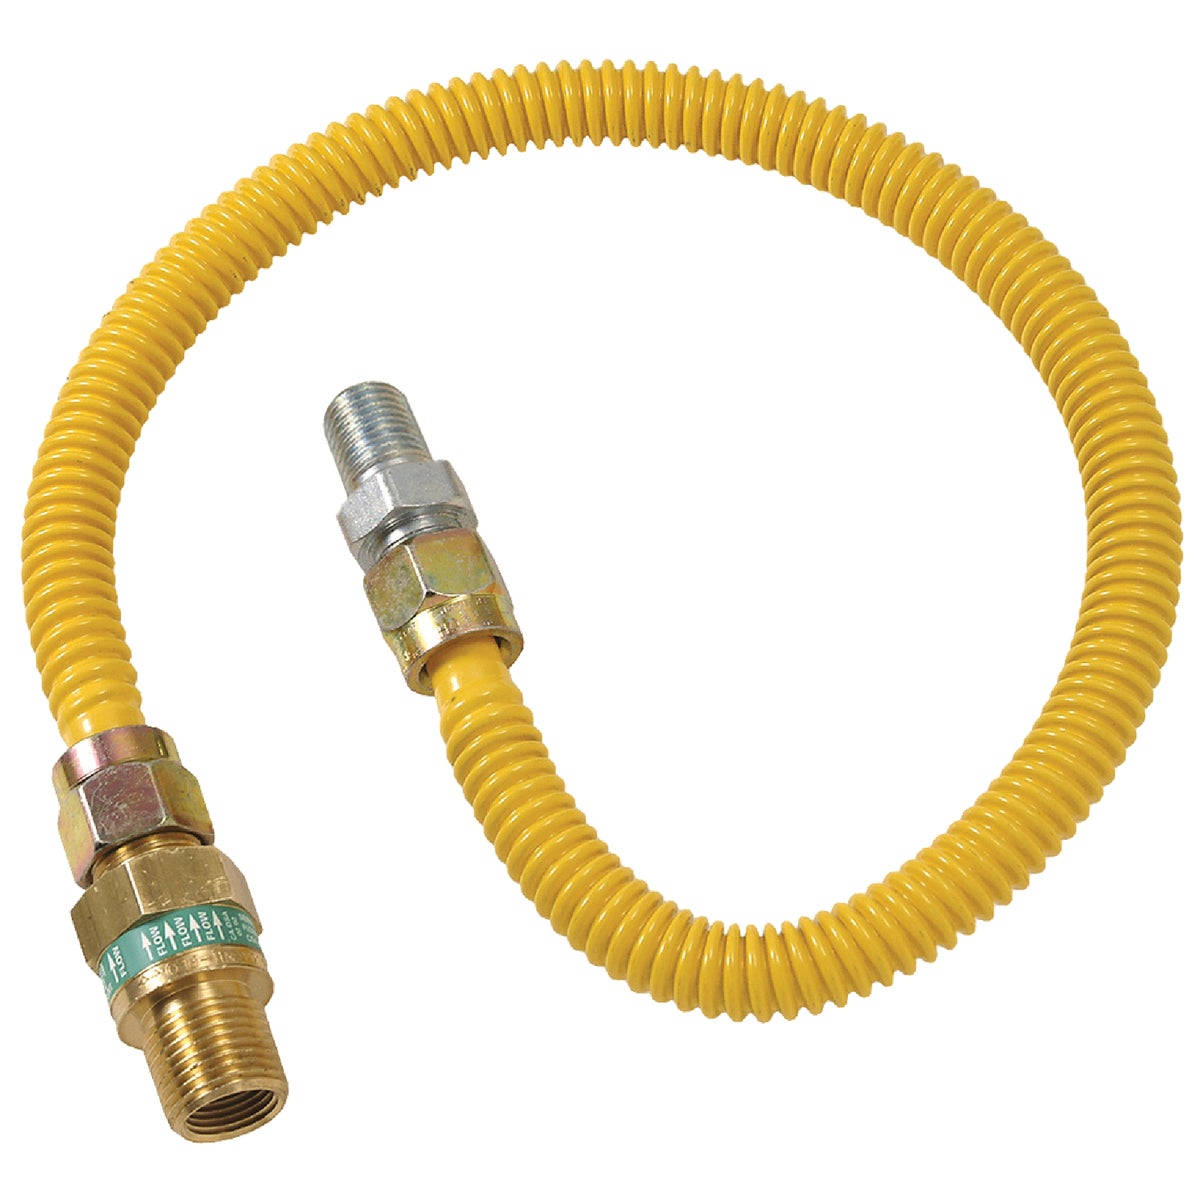 1/2X1/2-18 GAS CONNECTOR - CSSD44E-18P by Brass Craft